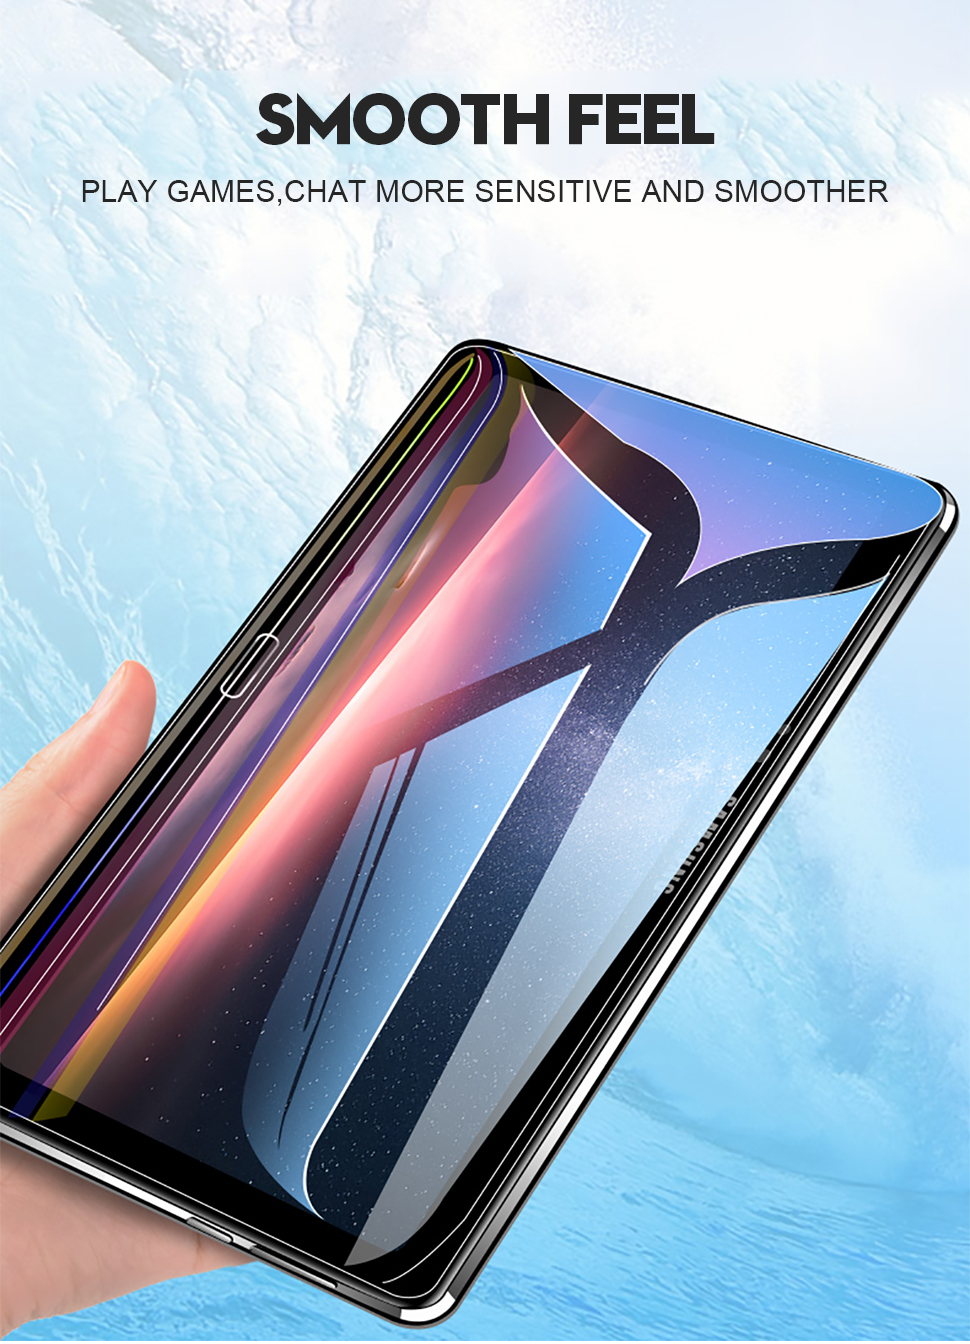 9D Full Coverage Tempered Glass Flim For Samsung Galaxy Tab A 10.5 2018 10.1 2016 E 9.7 Screen Protector For Galaxy Tab S4 S3 S2 (5)